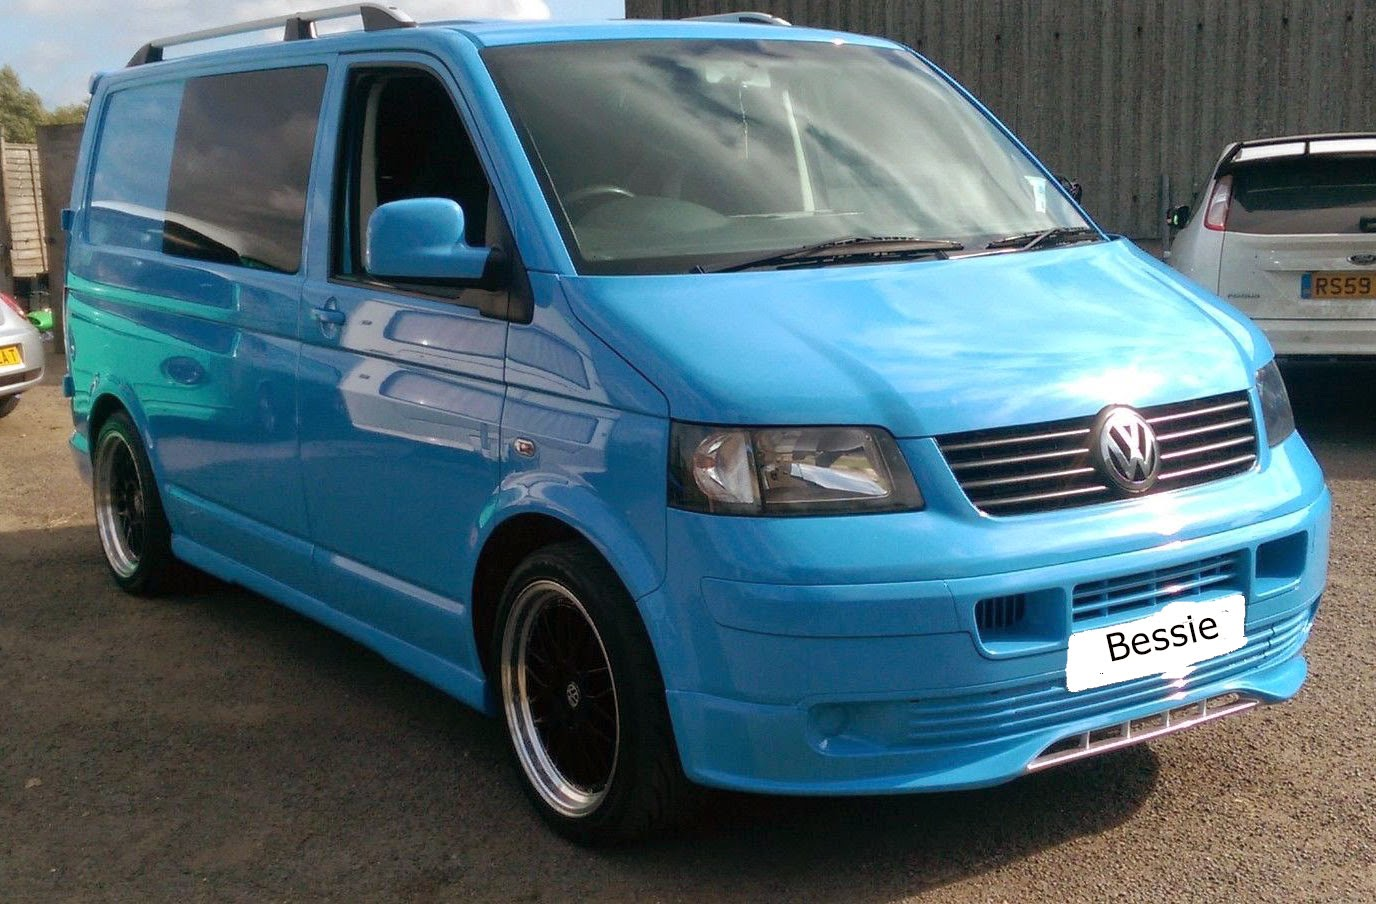 VWT5 2004 new paint job and conversion